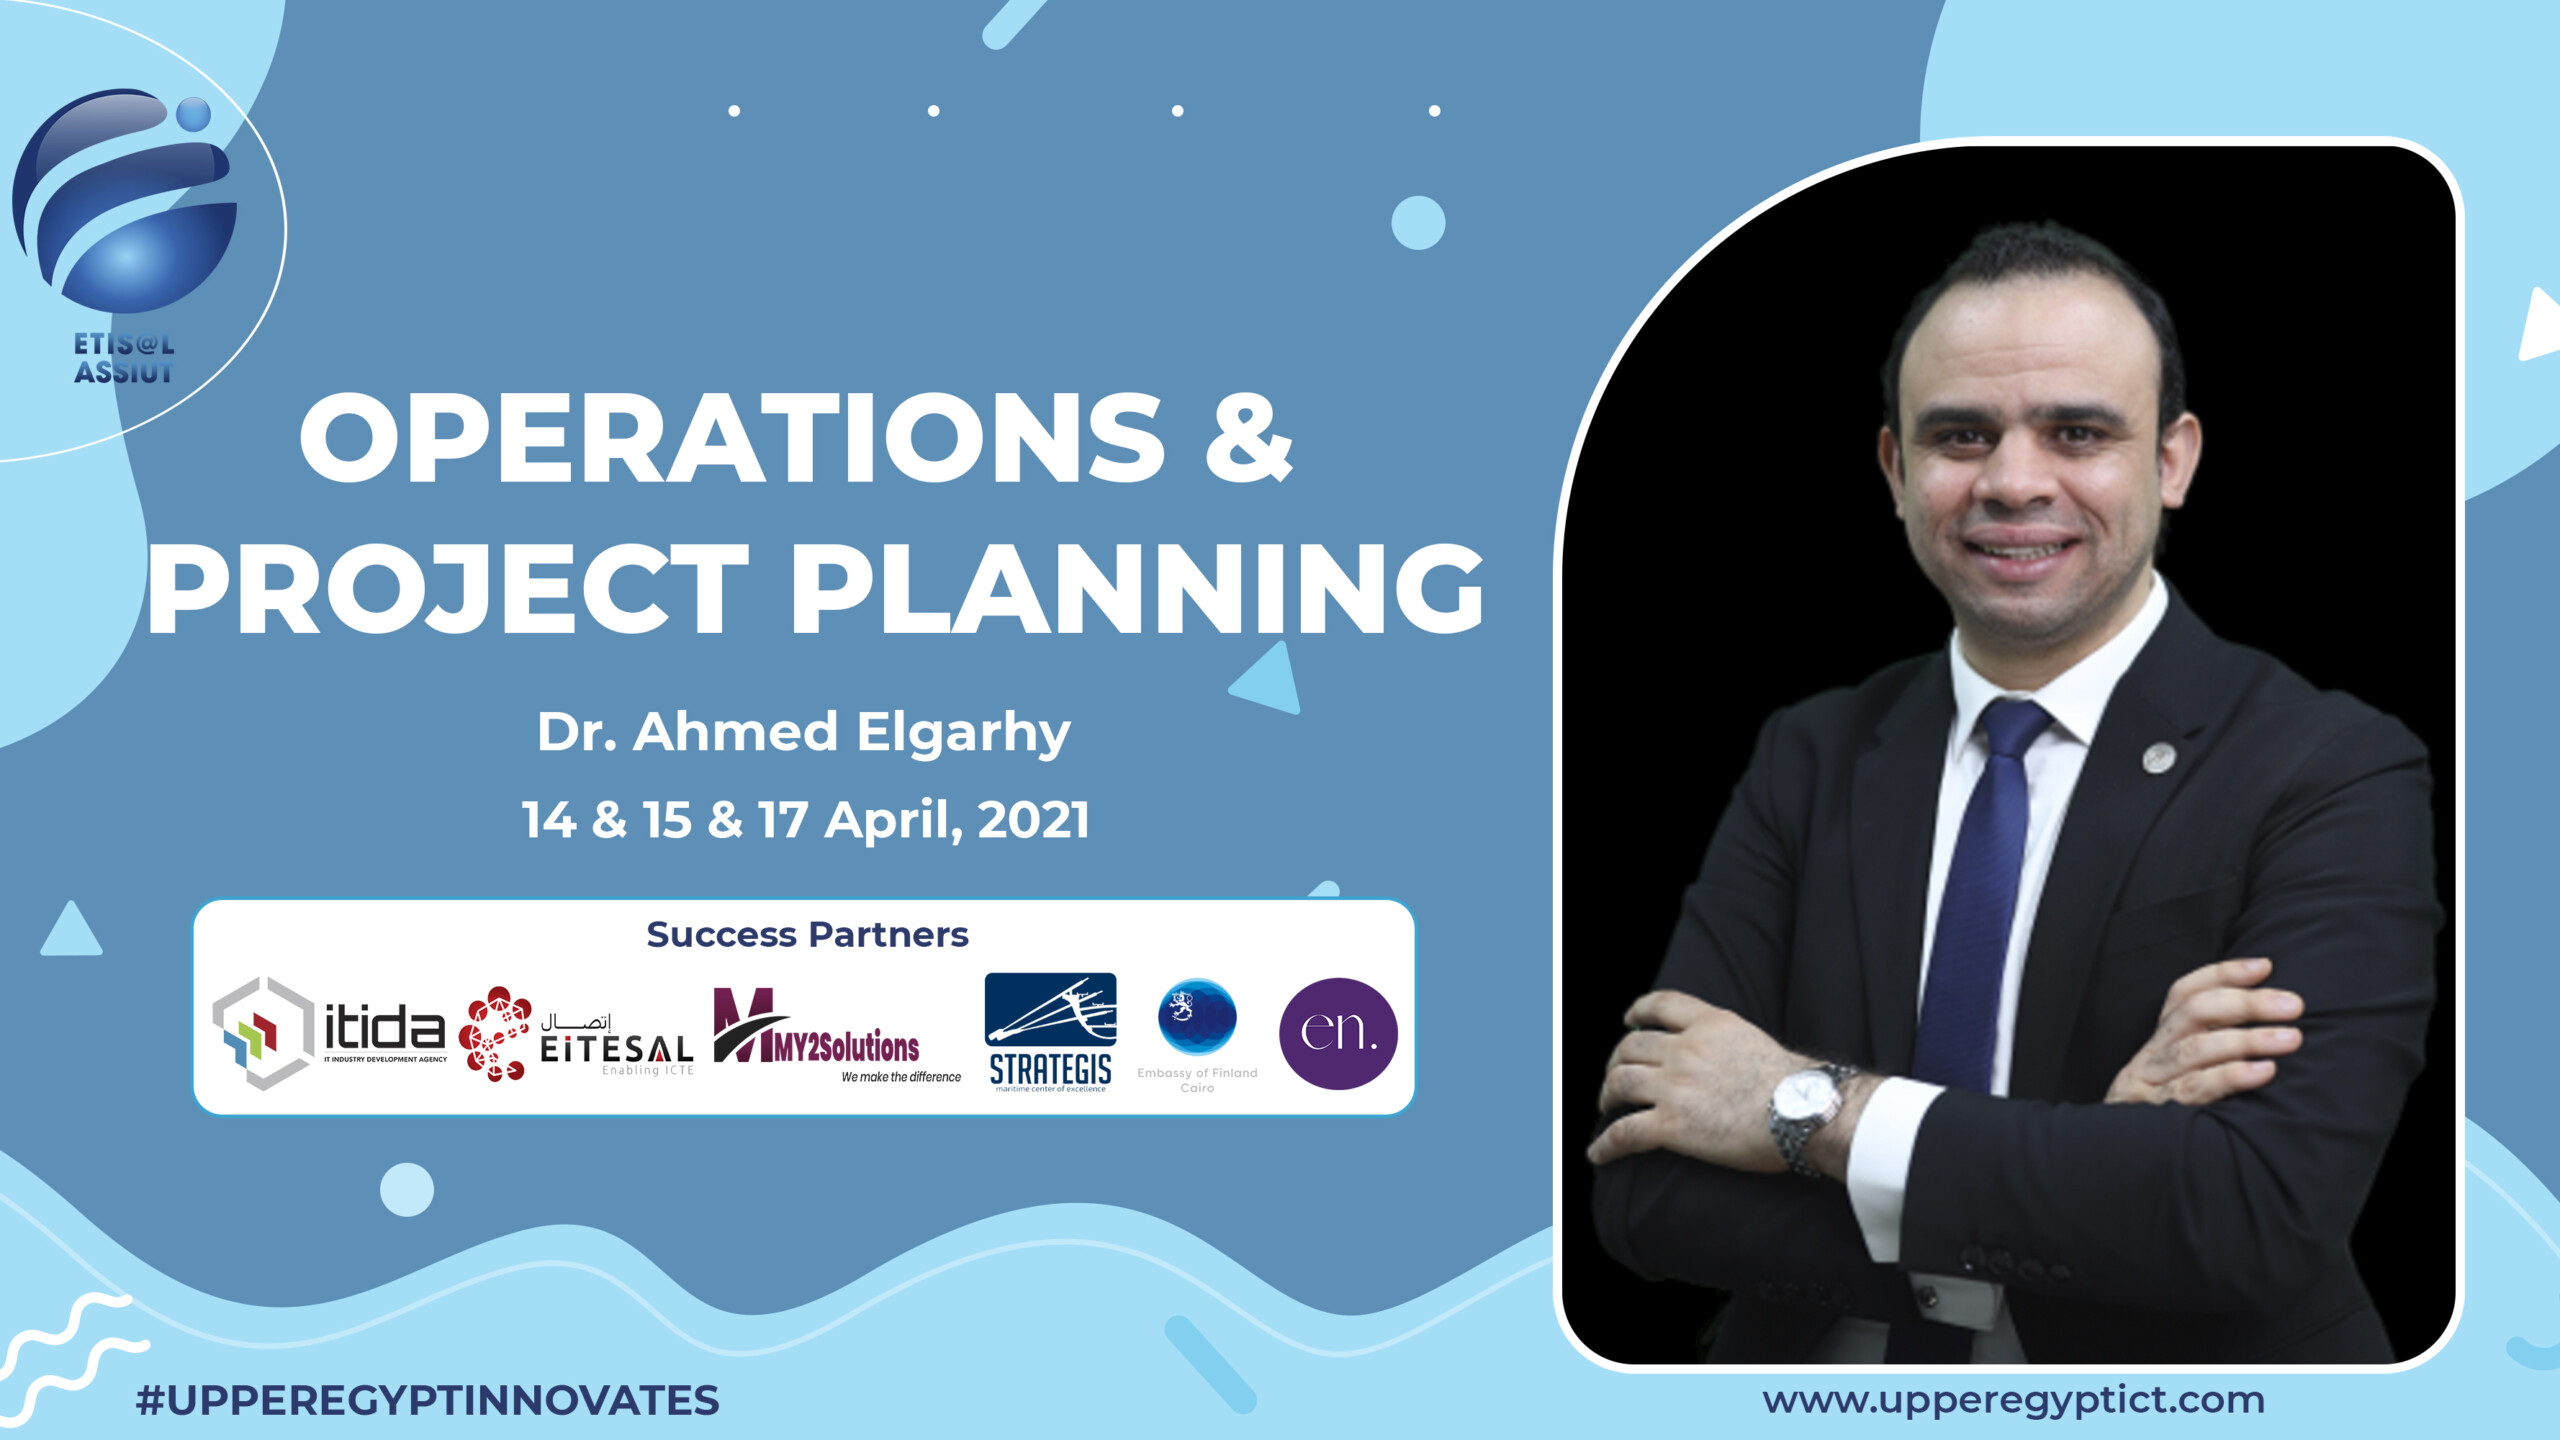 Operations & Project Planning